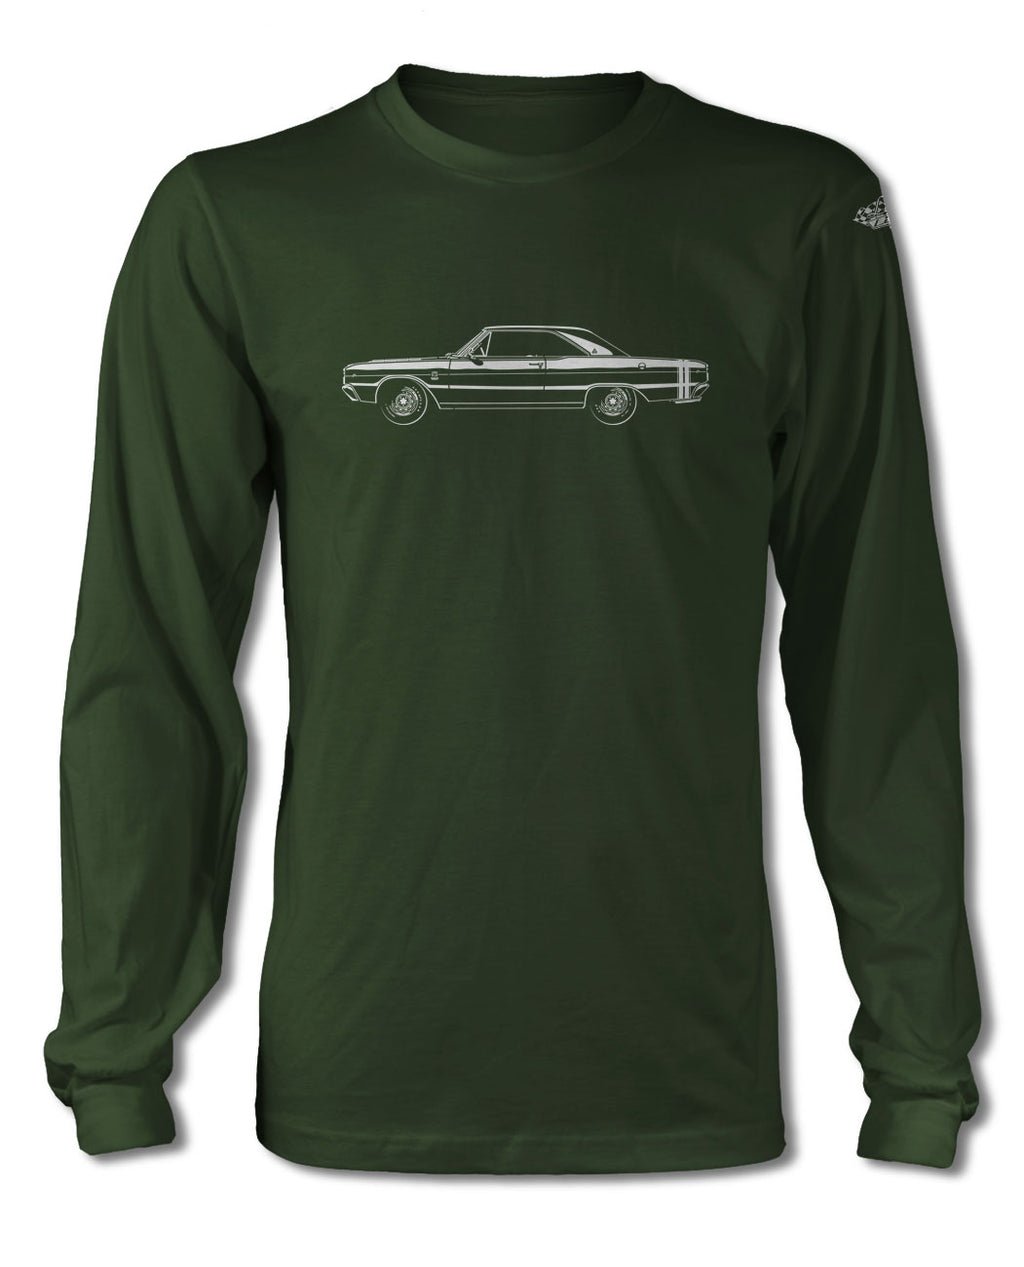 1968 Dodge Dart GTS Coupe T-Shirt - Long Sleeves - Side View